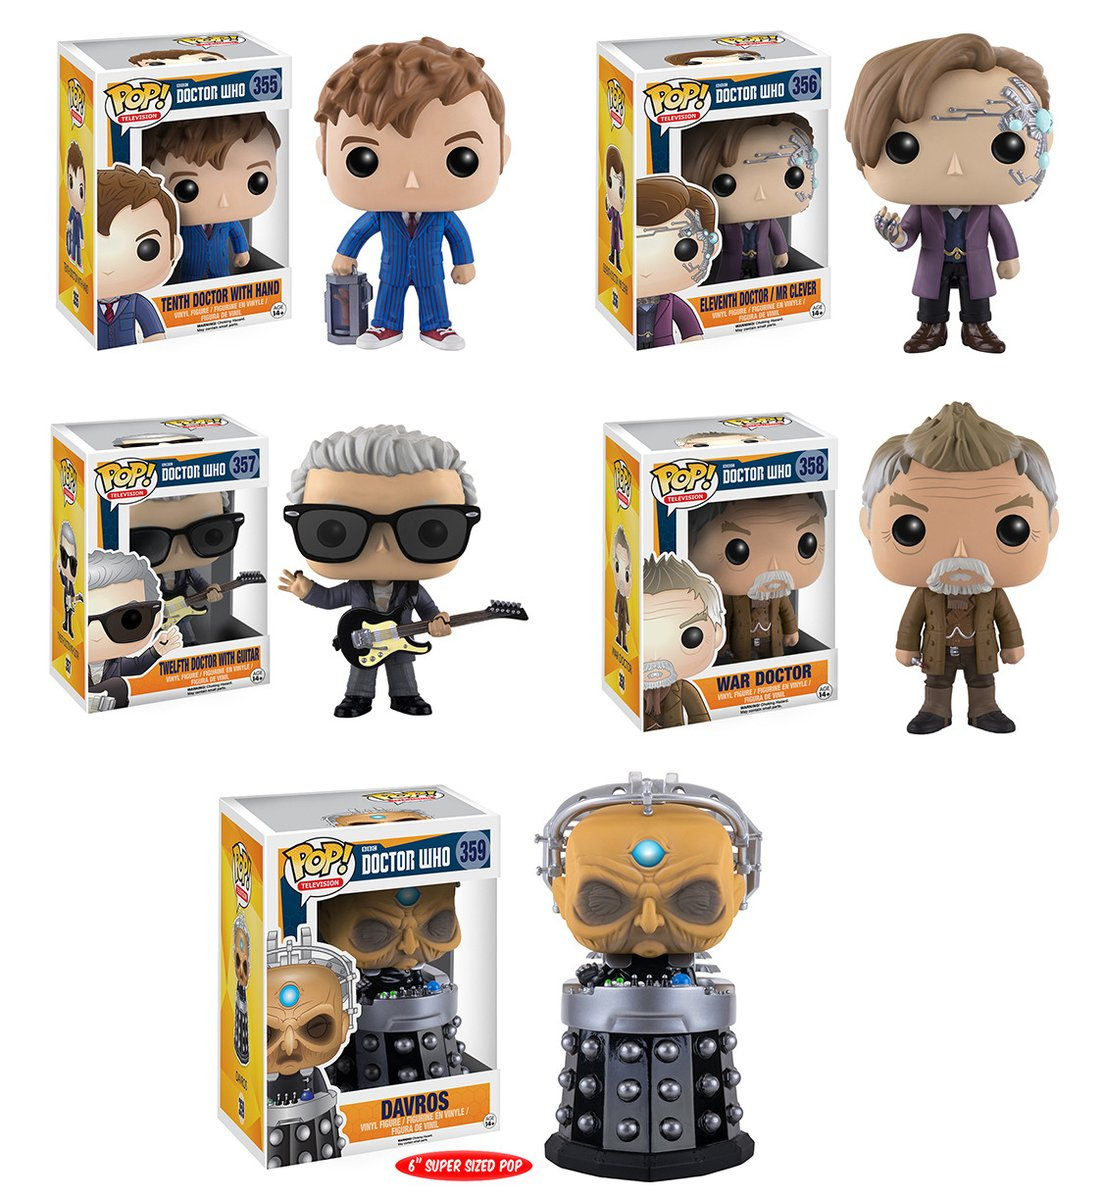 Uk New Doctor Who Funko Pop Figures Available To Buy